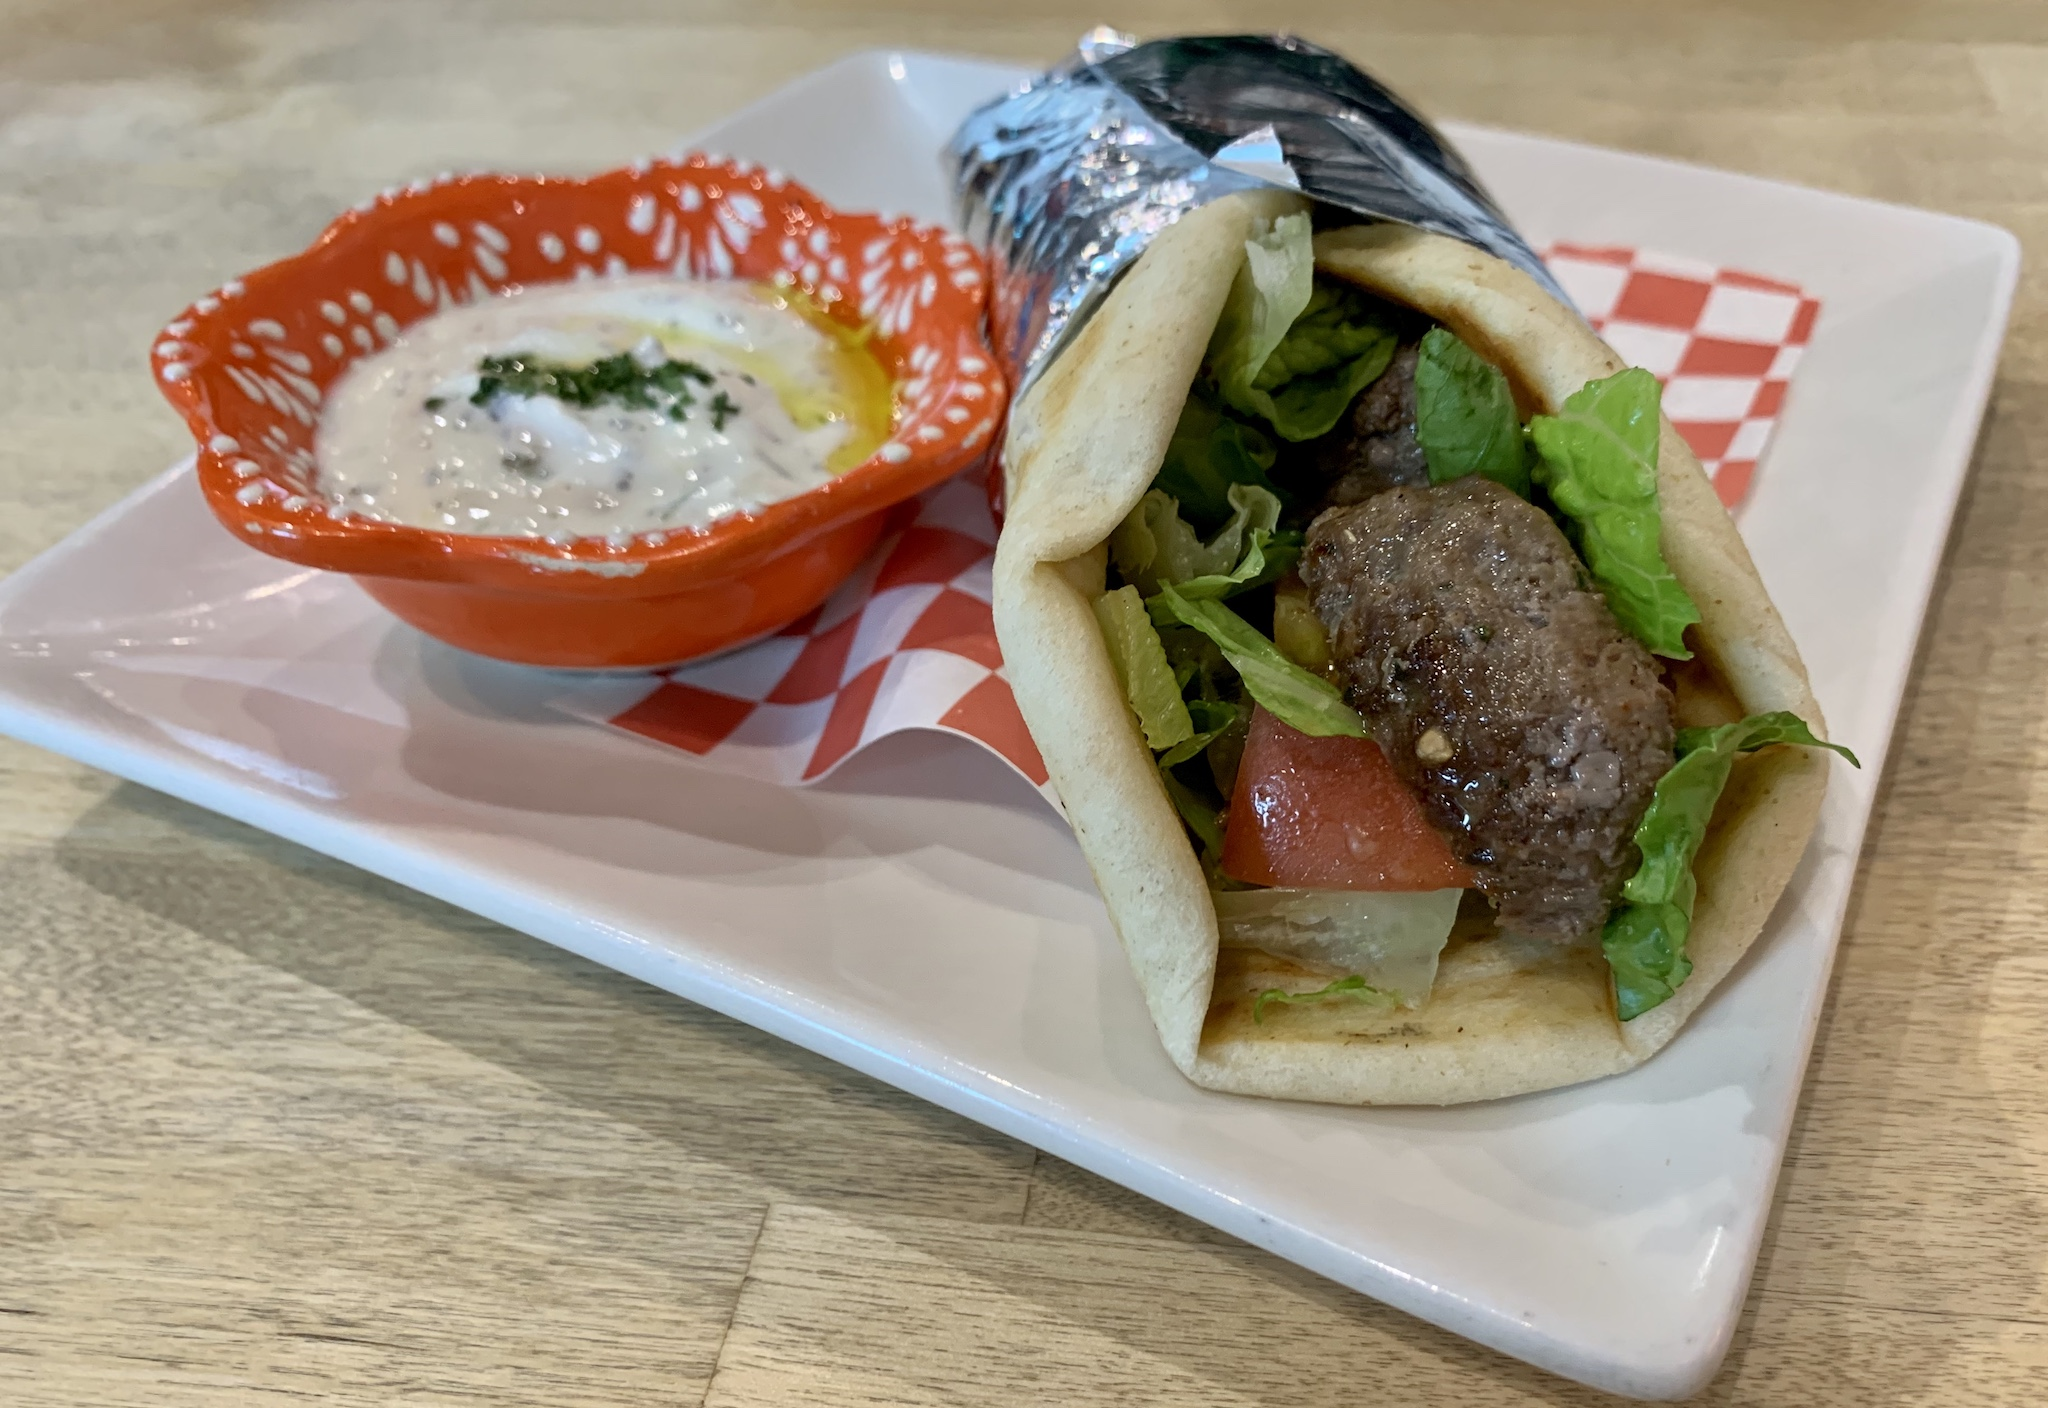 Mio's Grill & Cafe Grilled Meatball Sandwich